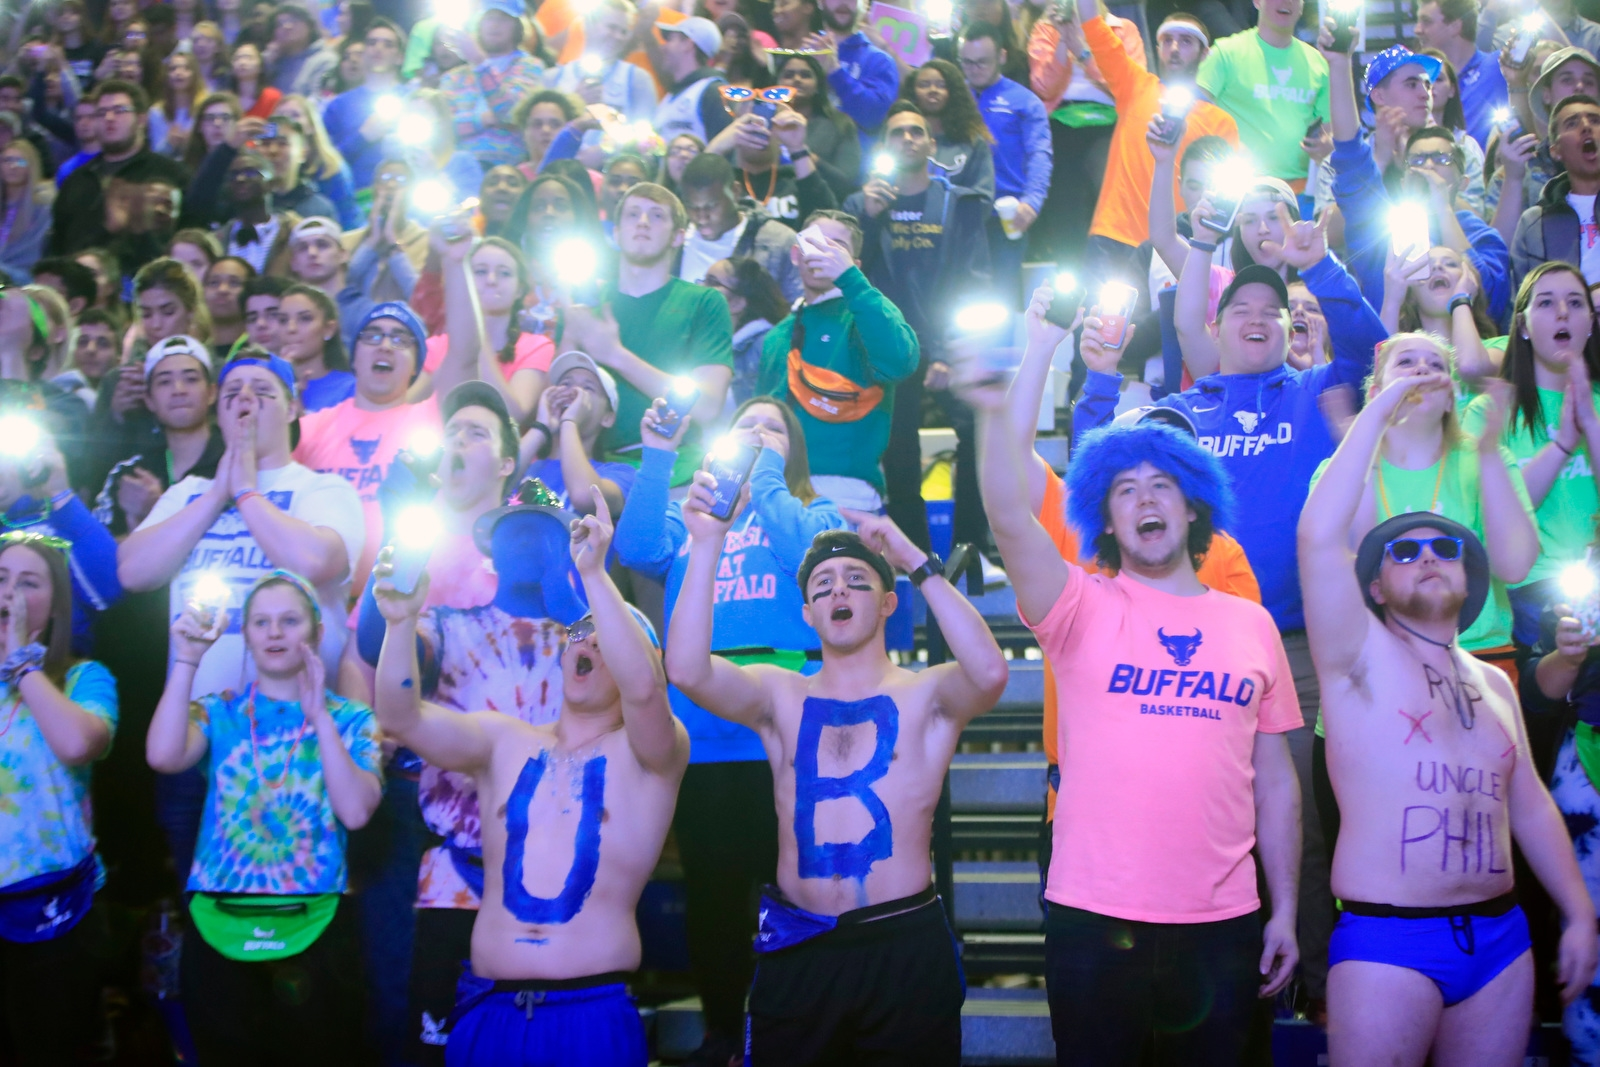 University at Buffalo fans cheer on their team against Western Michigan prior to first half action at Alumni Arena on Friday, Feb. 2, 2018.